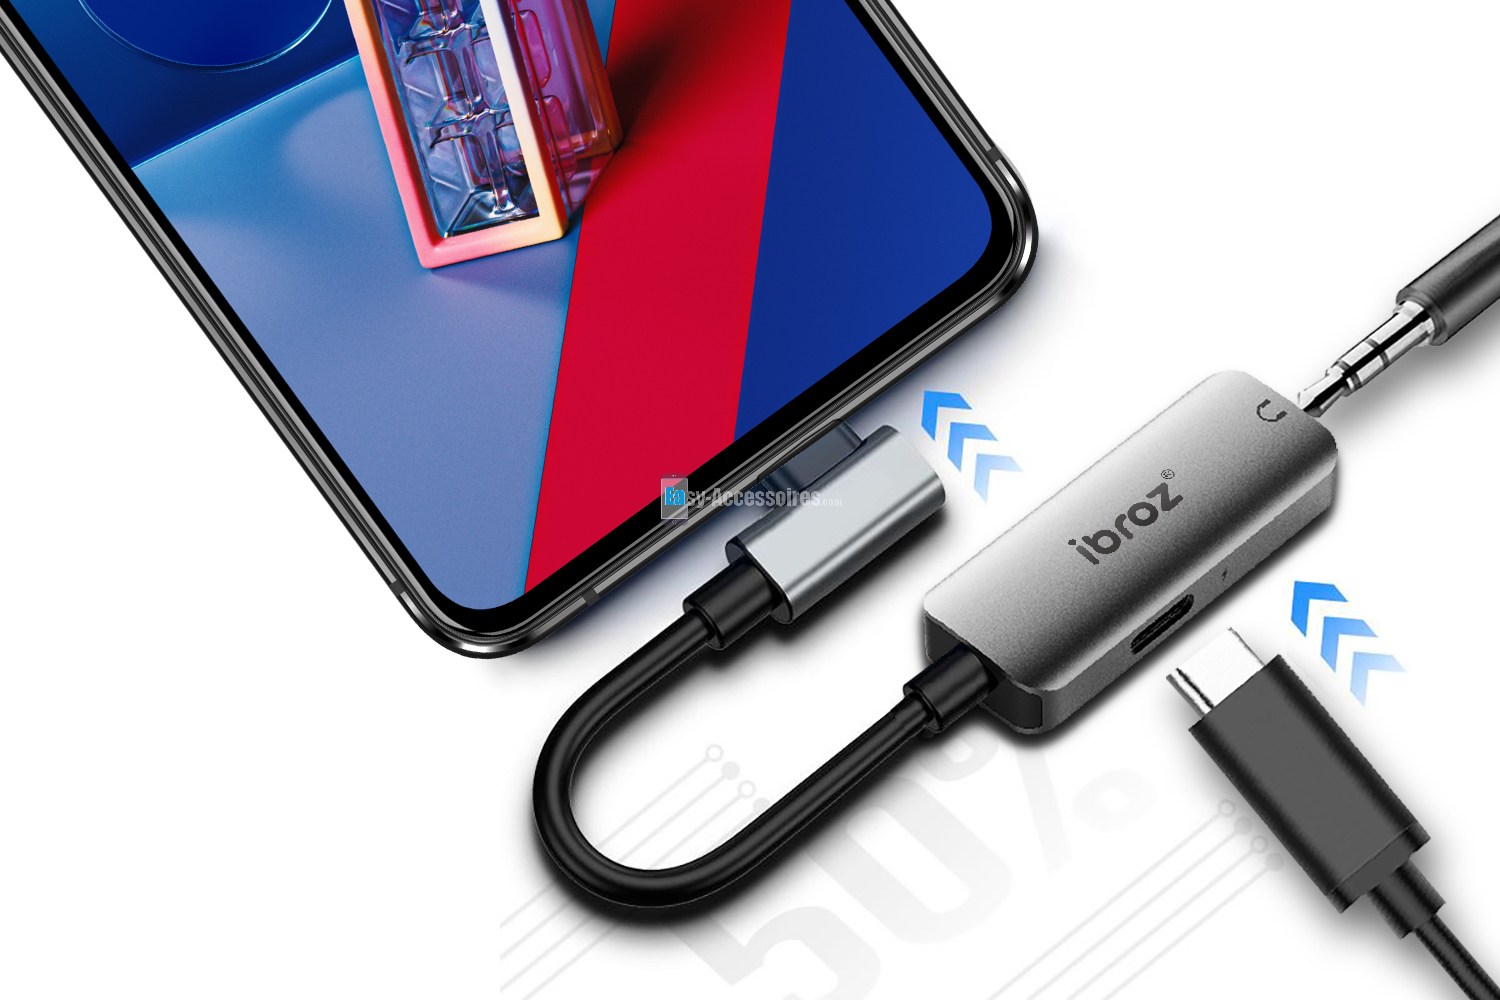 Ibroz Adaptateur USB Type C / Jack  audio 3.5mm + Fast  Charge 18W